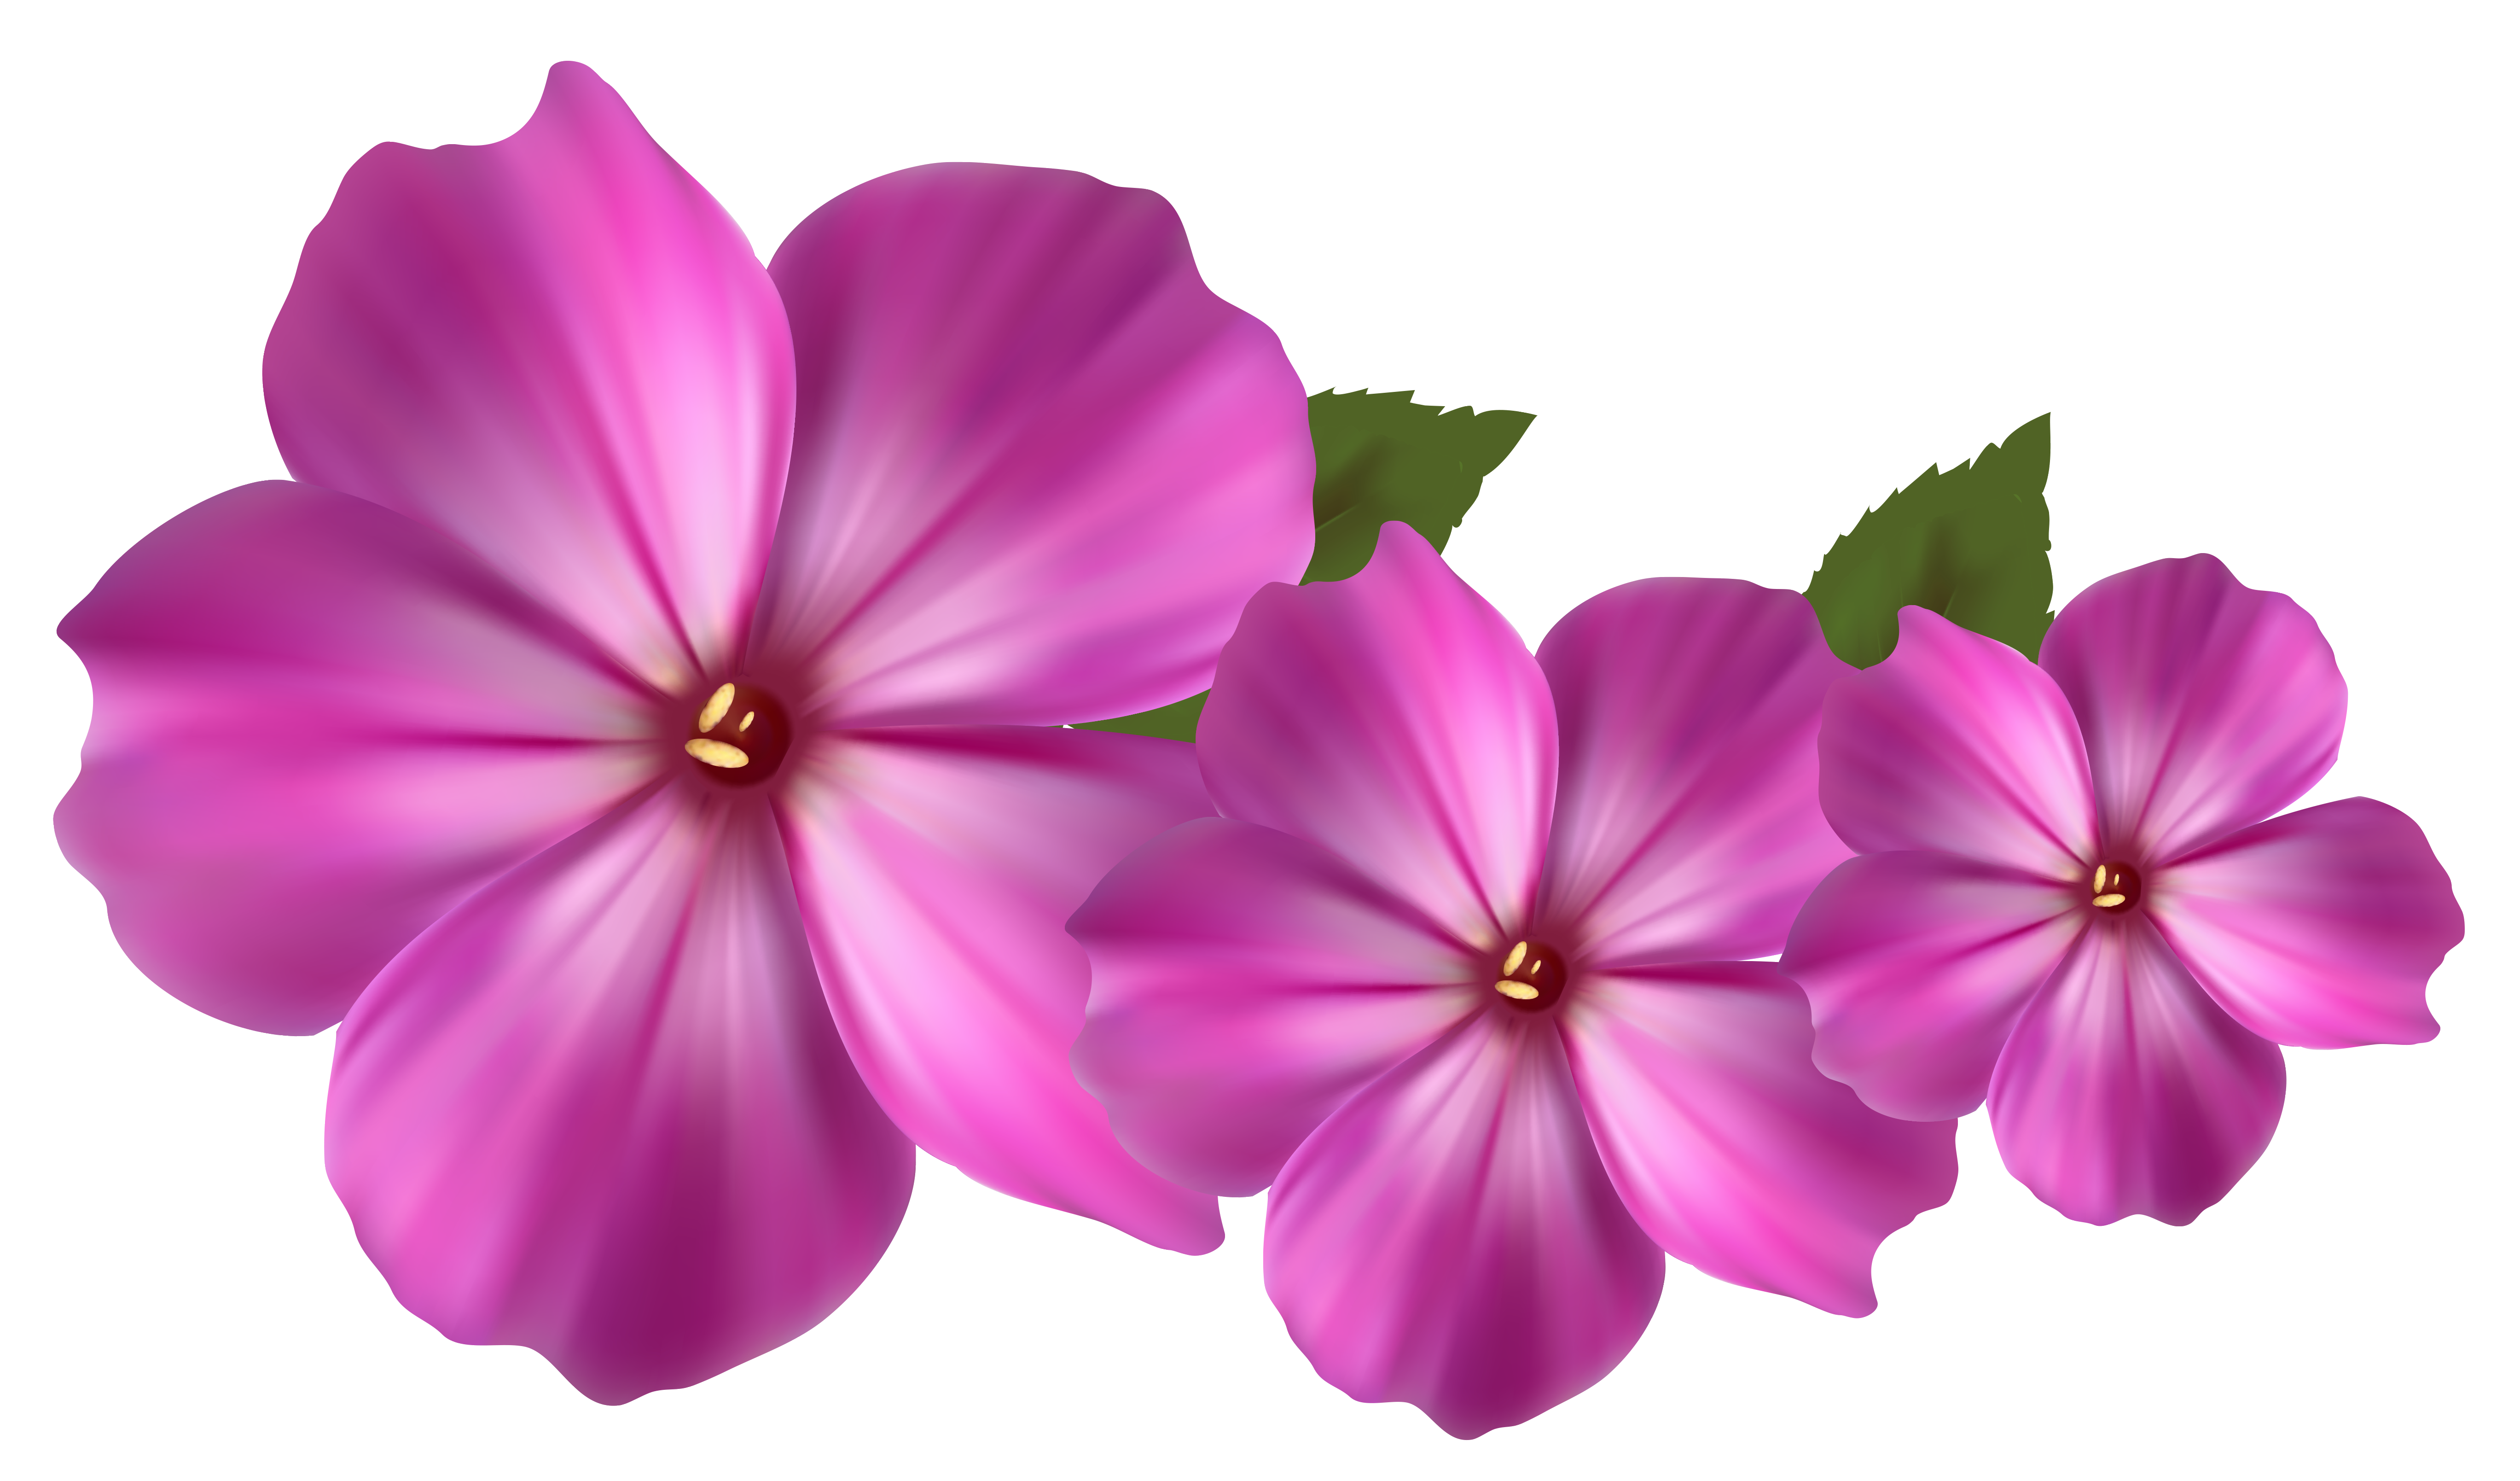 Real Flowers Png Flower Png - ClipArt B...